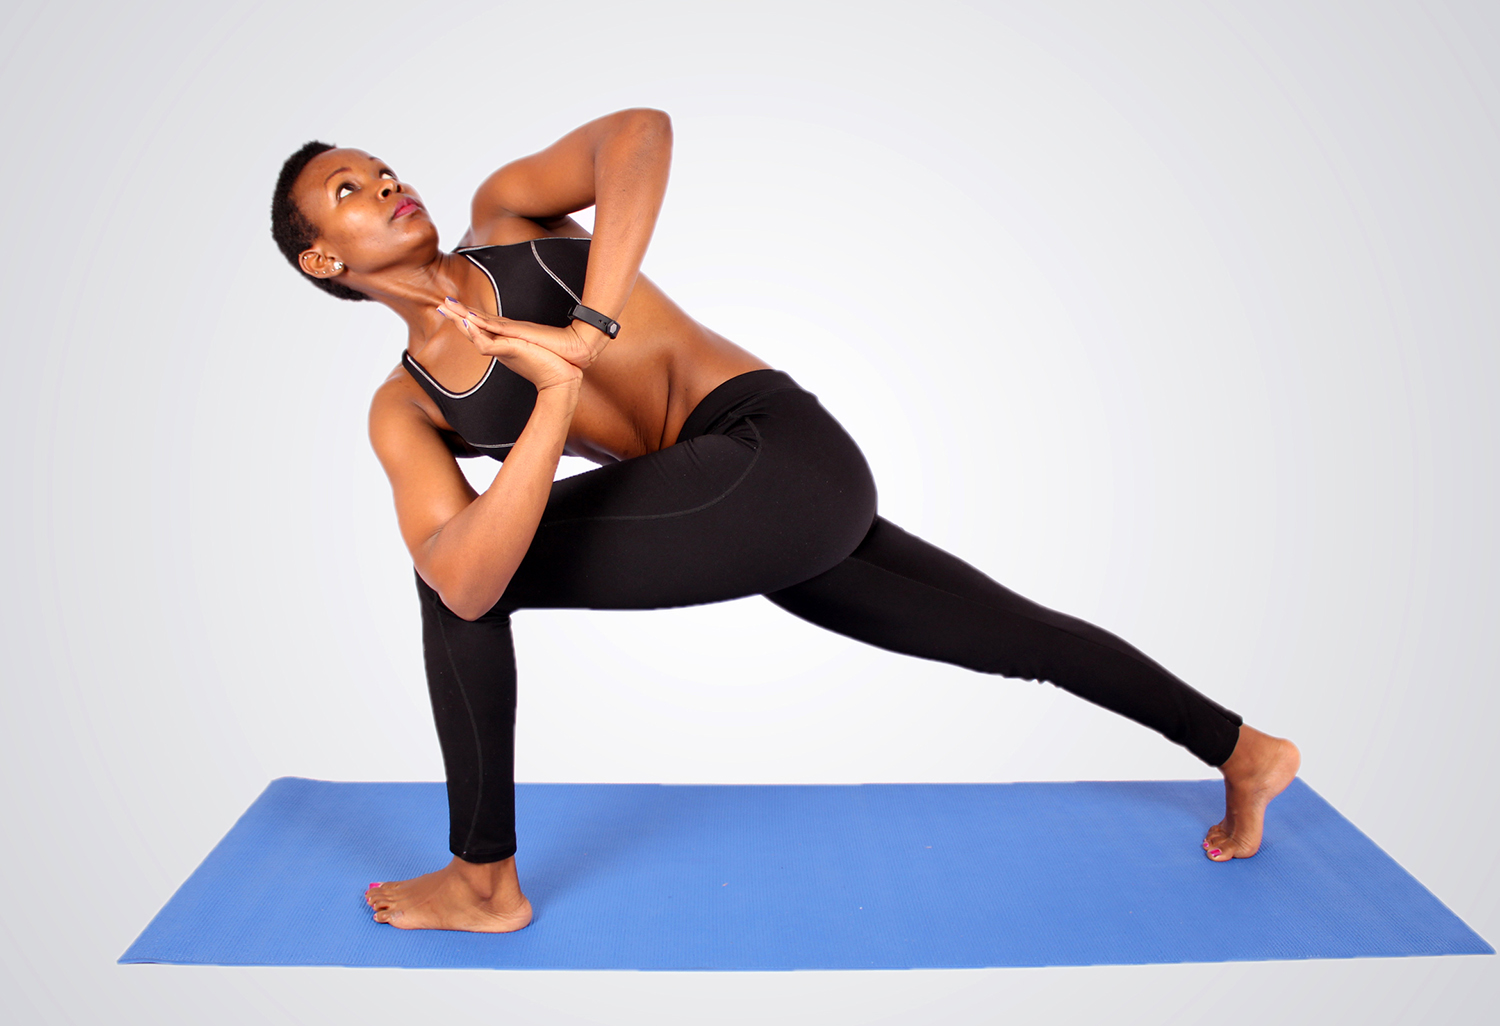 Fit Woman Doing Side Angle Pose. Warrior Twist Yoga Pose - High